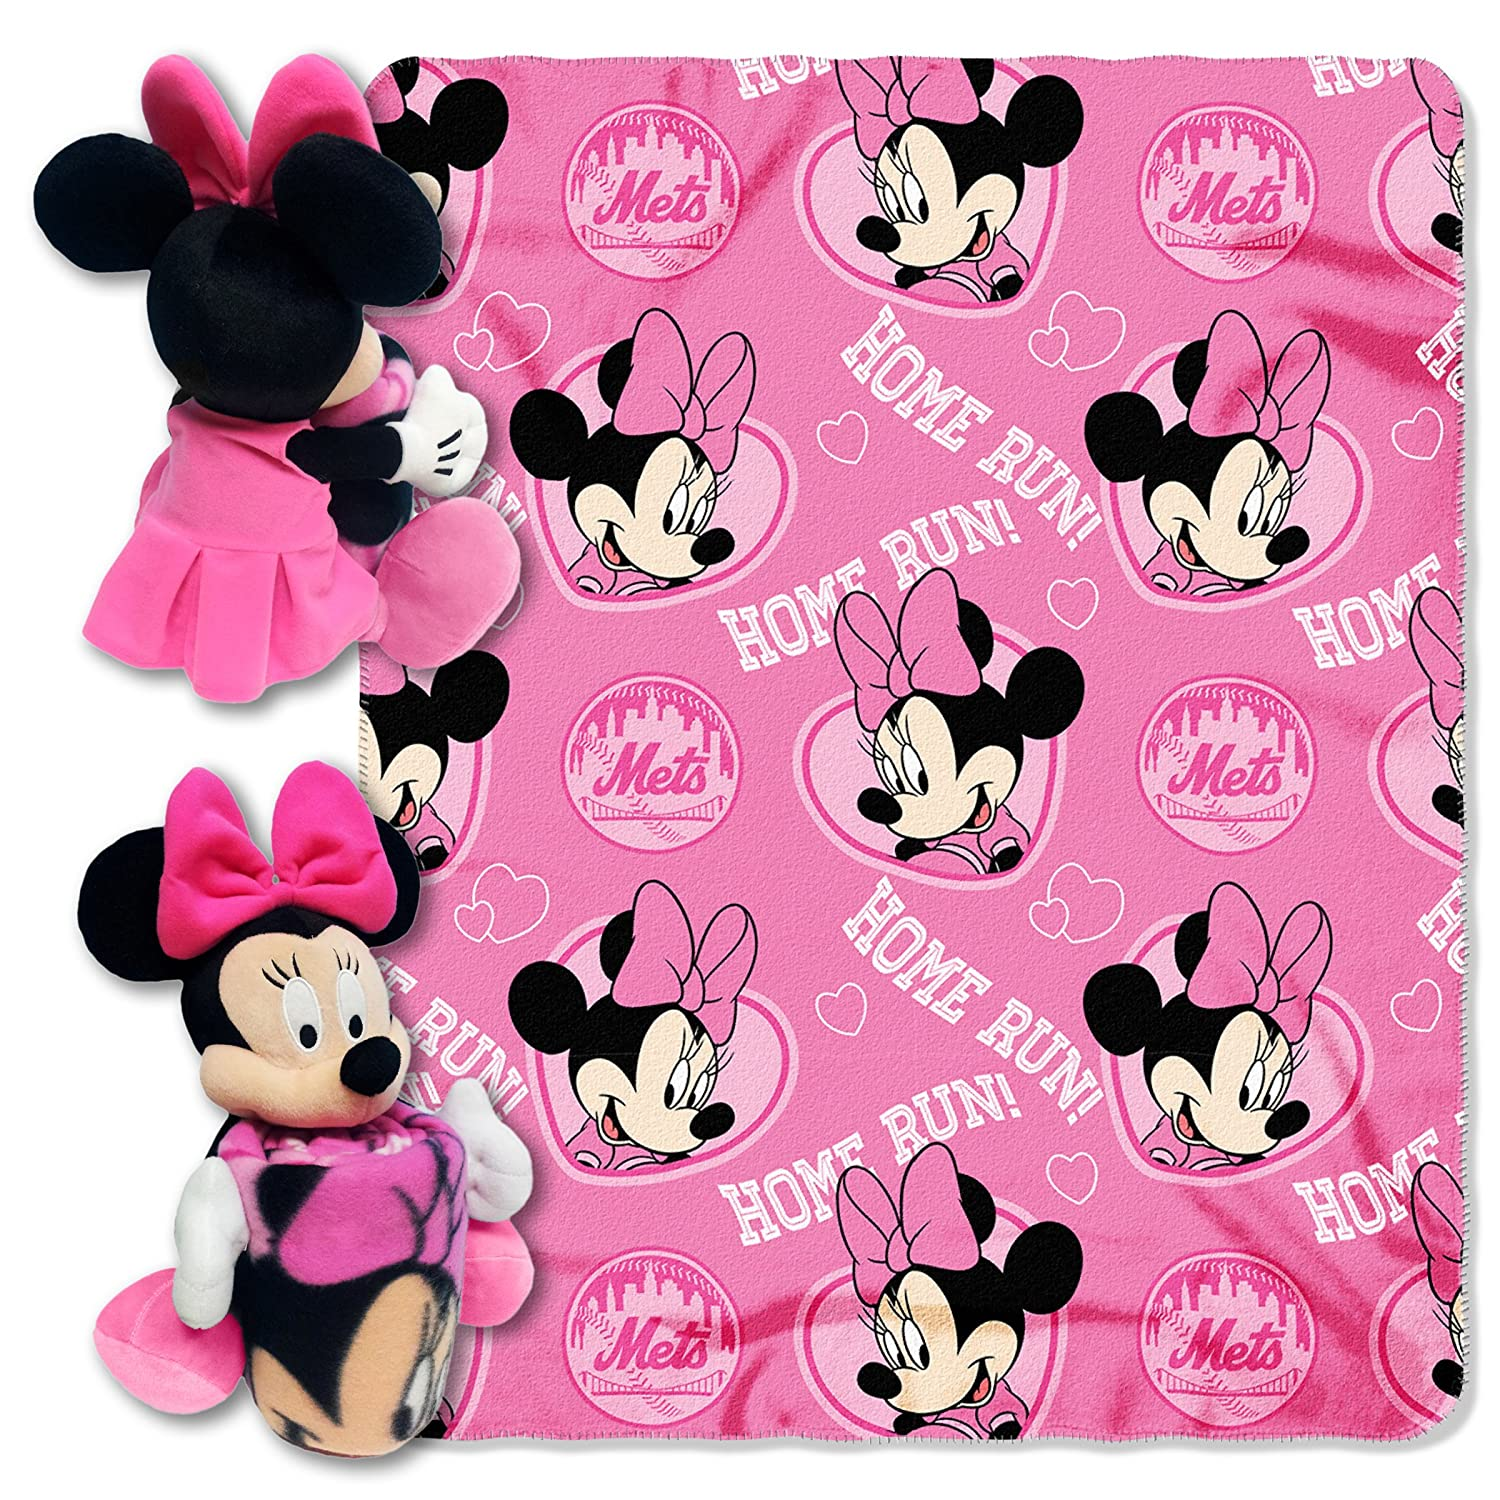 "Officially Licensed MLB & Minnie Cobranded Hugger Fleece Throw Blanket, Soft & Cozy, Washable, 40"" x 50"""